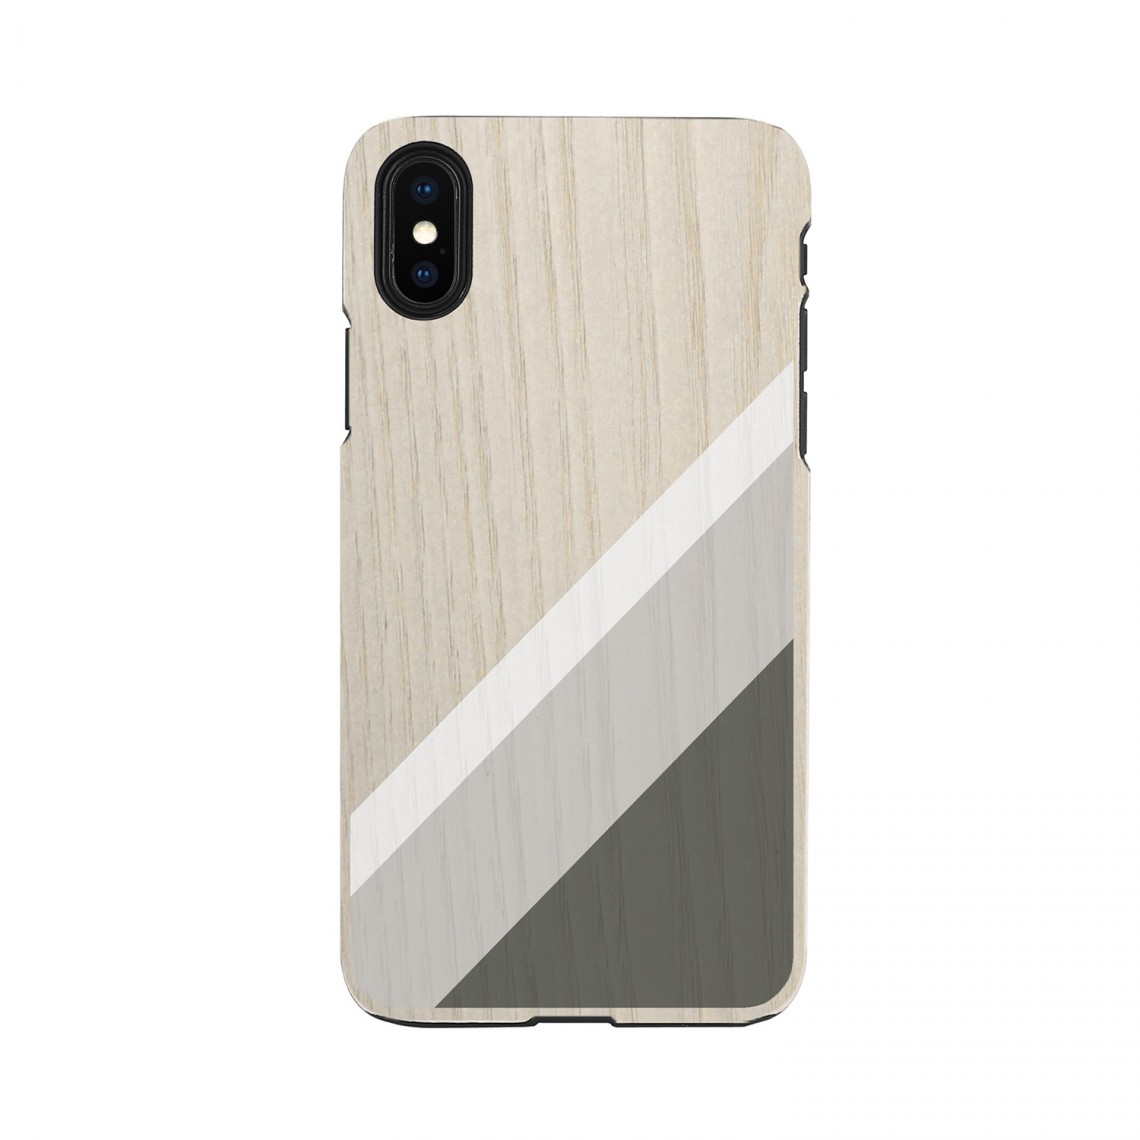 iPhone XR ケース 天然木 Man&Wood Suit(マンアンドウッド スーツ)